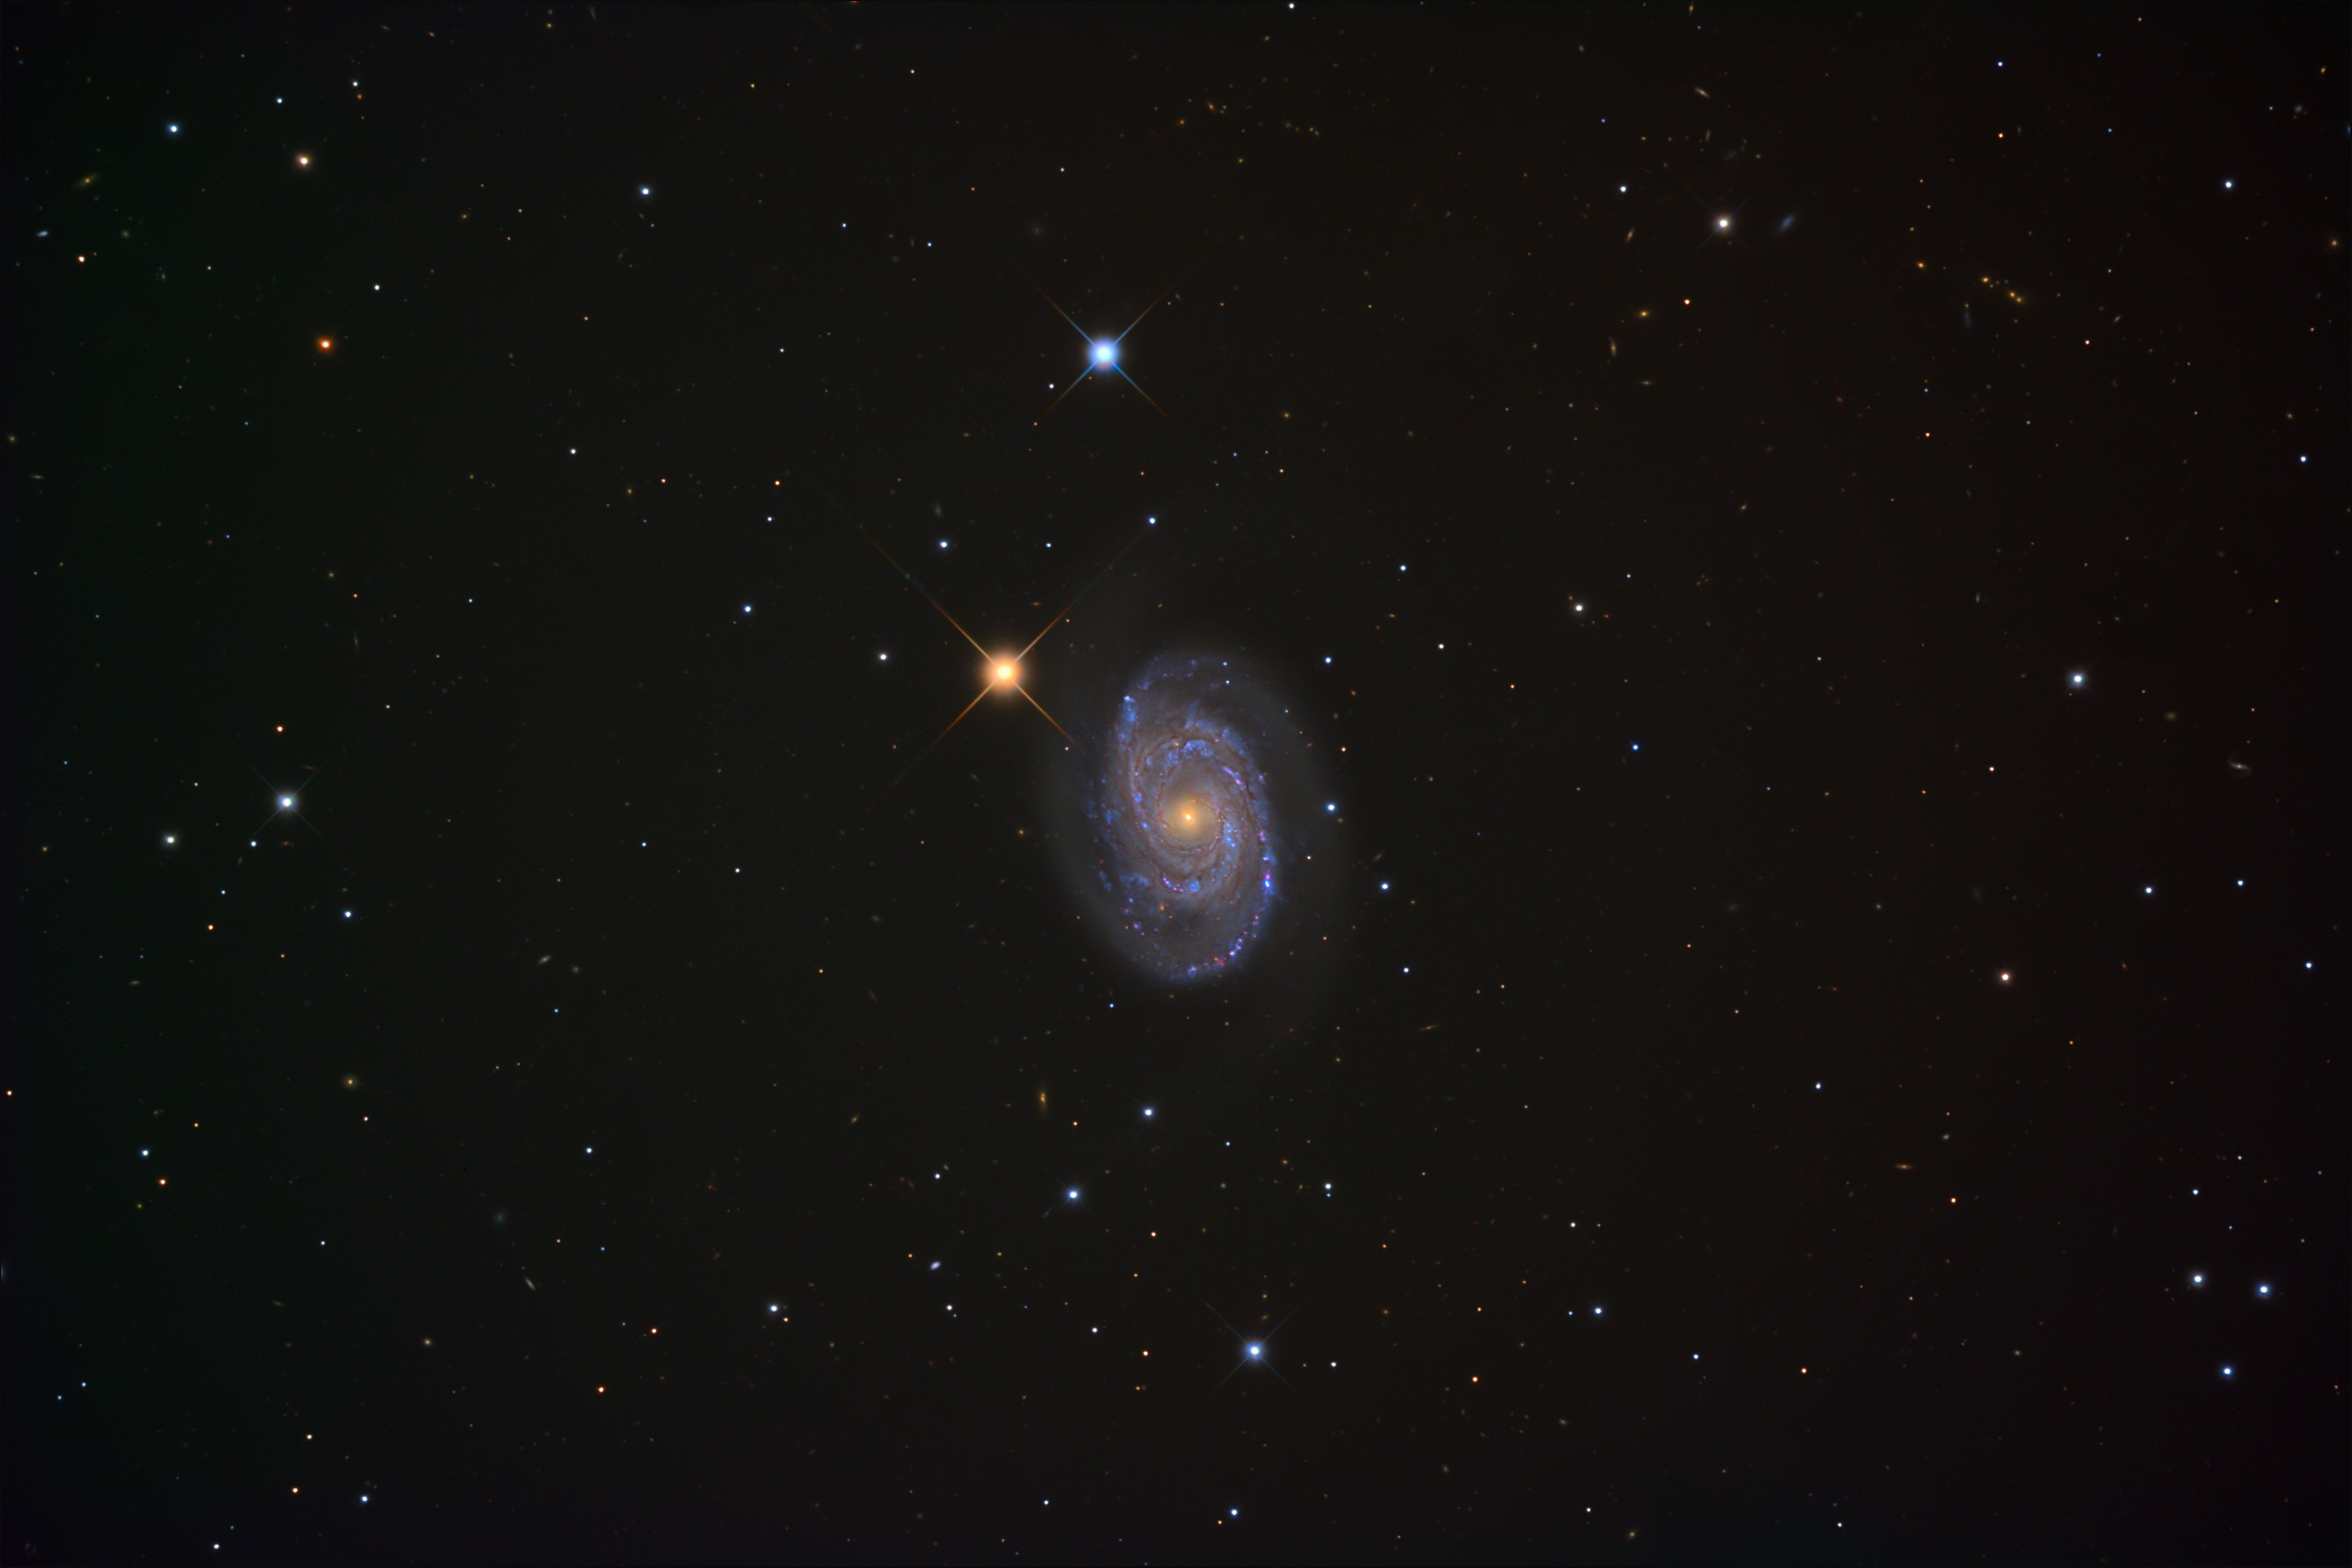 A photo of a galaxy